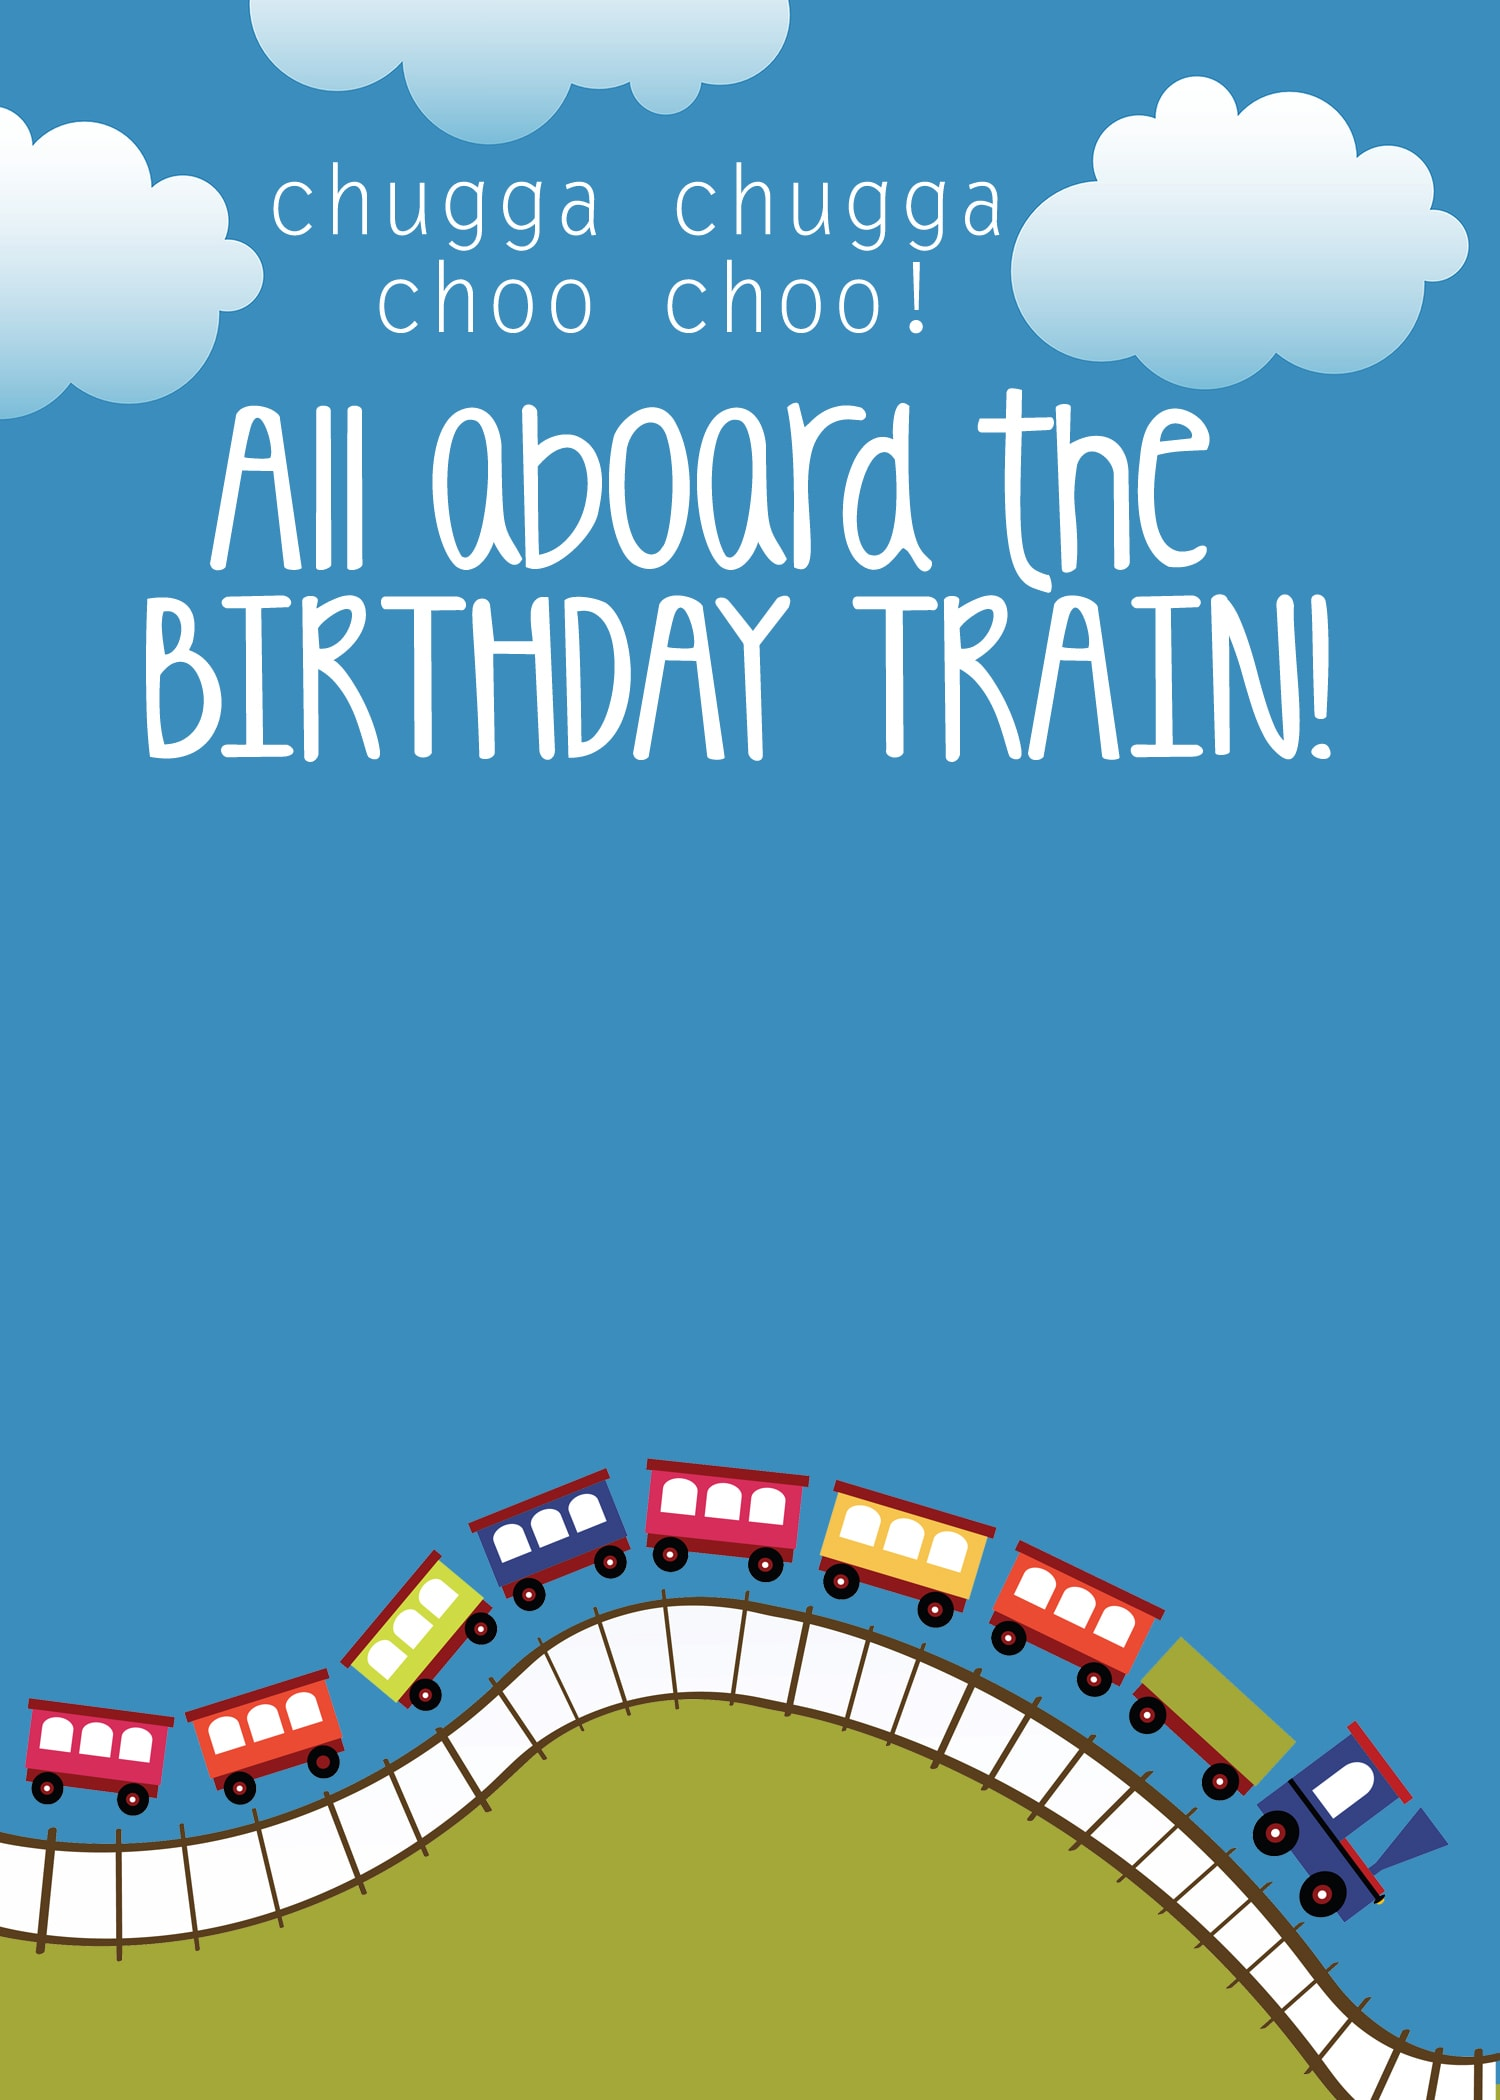 Train themed birthday party with free printables how to nest for less httpshowtonestforlesswp contentuploads201403train birthday party invitation templateg stopboris